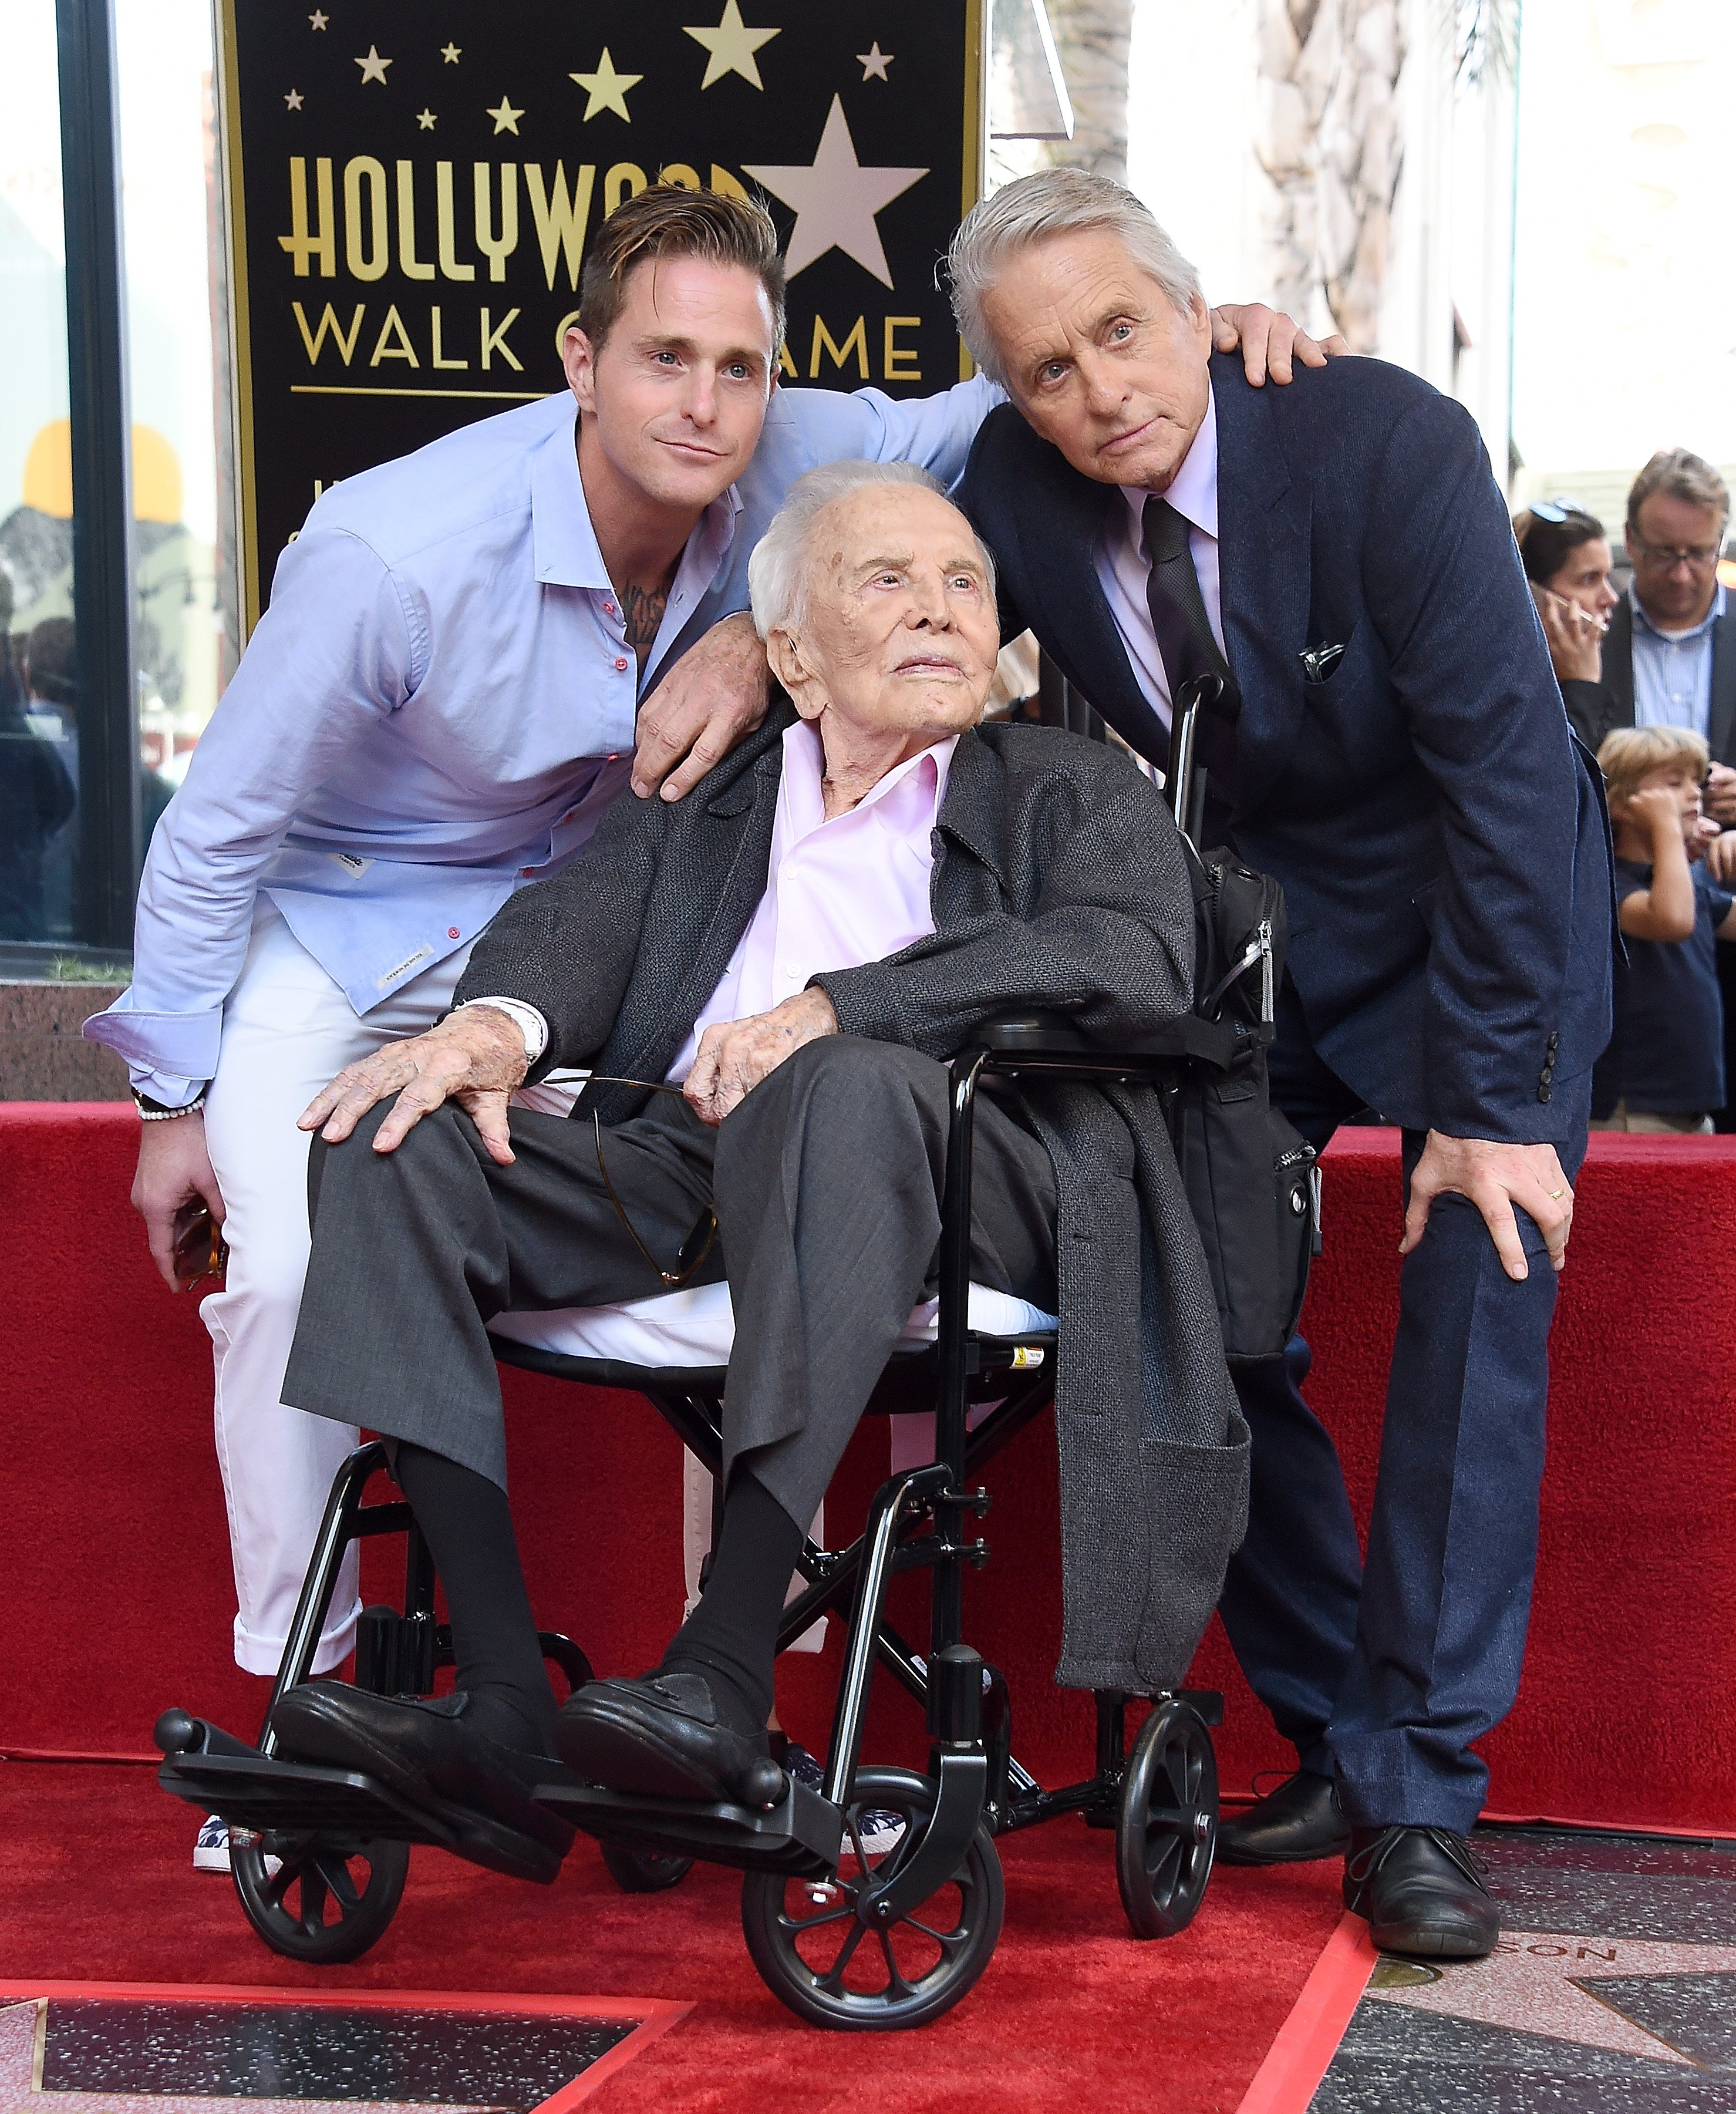 Cameron, Kirk, and Michael Douglas pose at the Michael Douglas Star On The Hollywood Walk Of Fame ceremony on November 6, 2018 in Hollywood, California | Photo: Getty Images